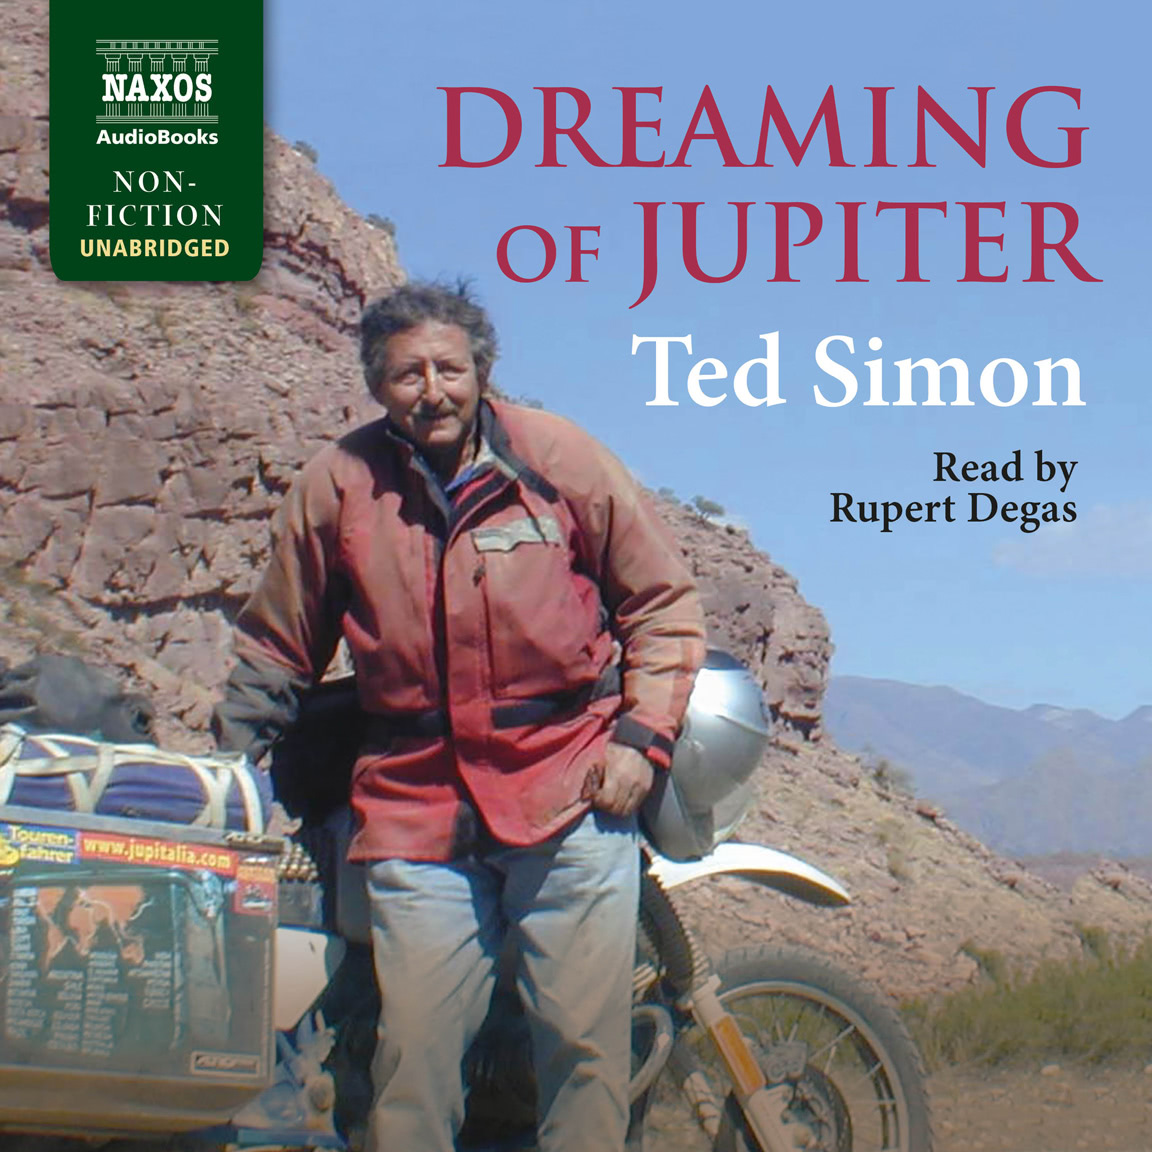 Dreaming of Jupiter (unabridged)